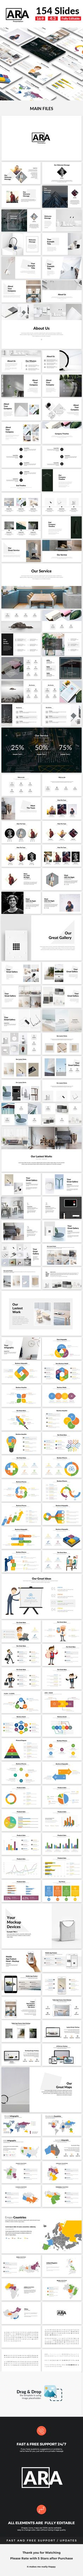 ARA Powerpoint Template